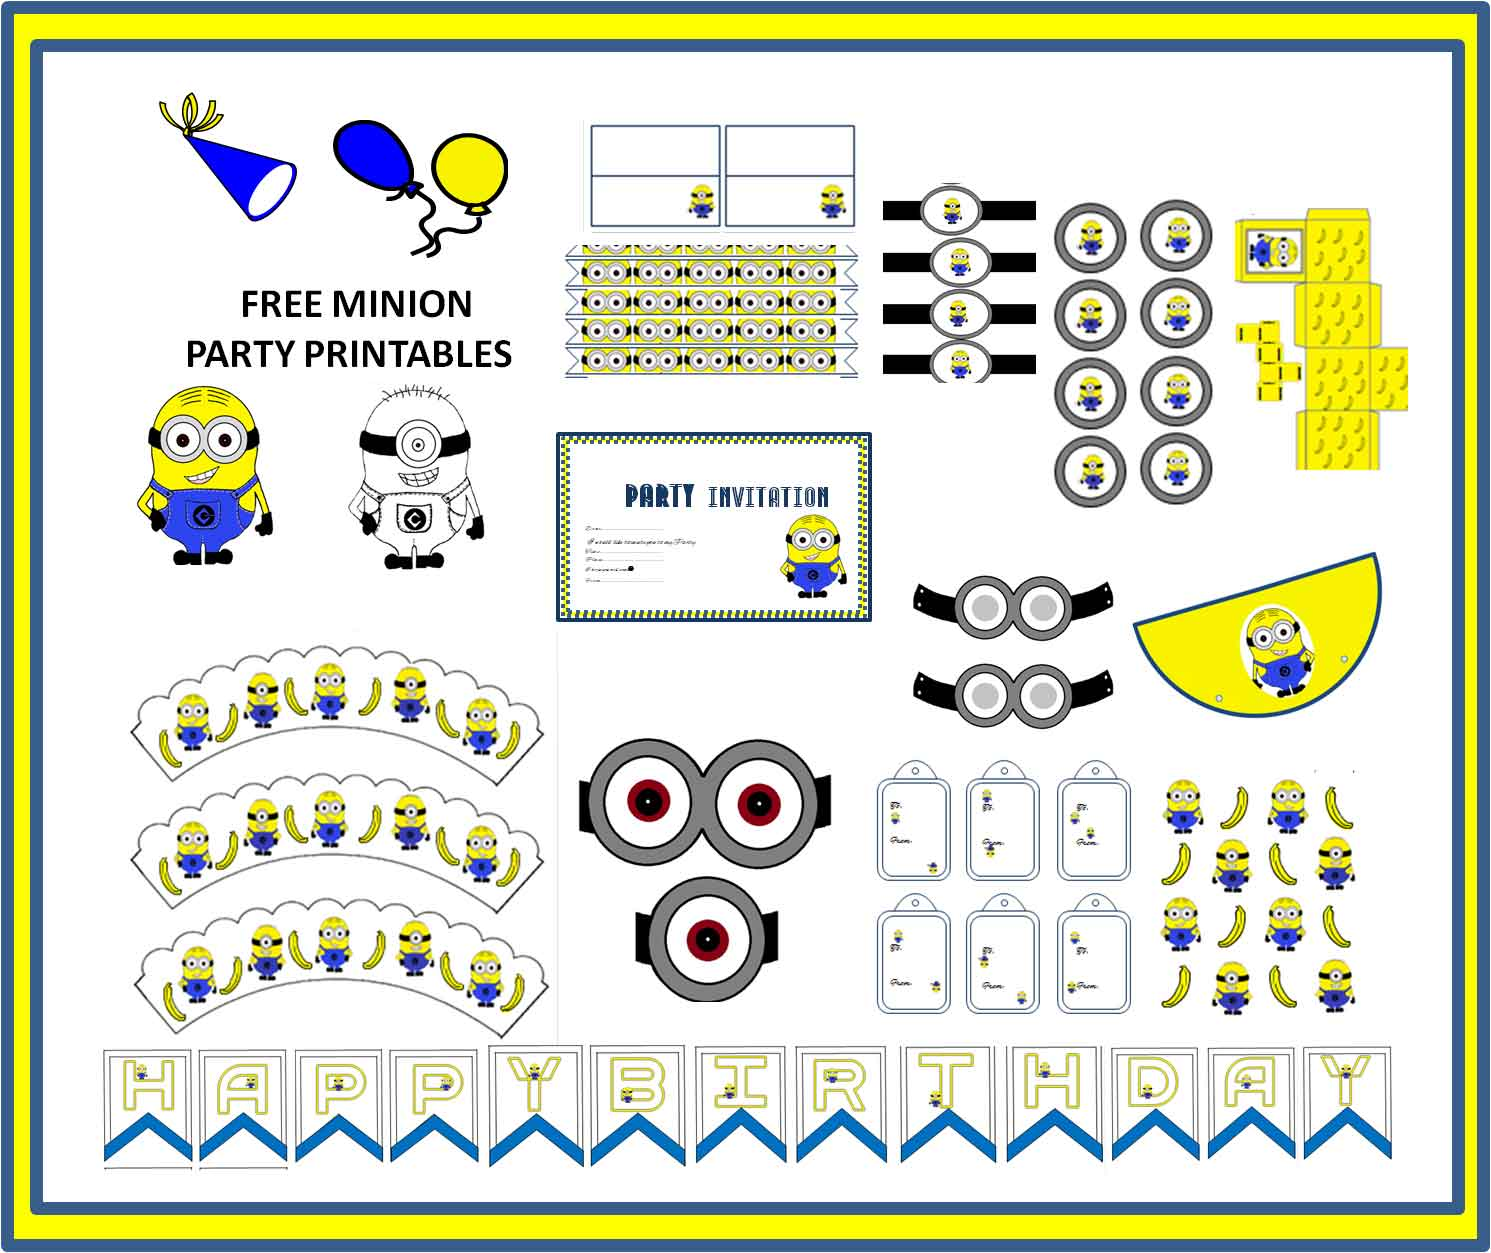 photo regarding Minion Logo Printable titled minion-bash-printable - Easiest Topic Social gathering Planner Birthday